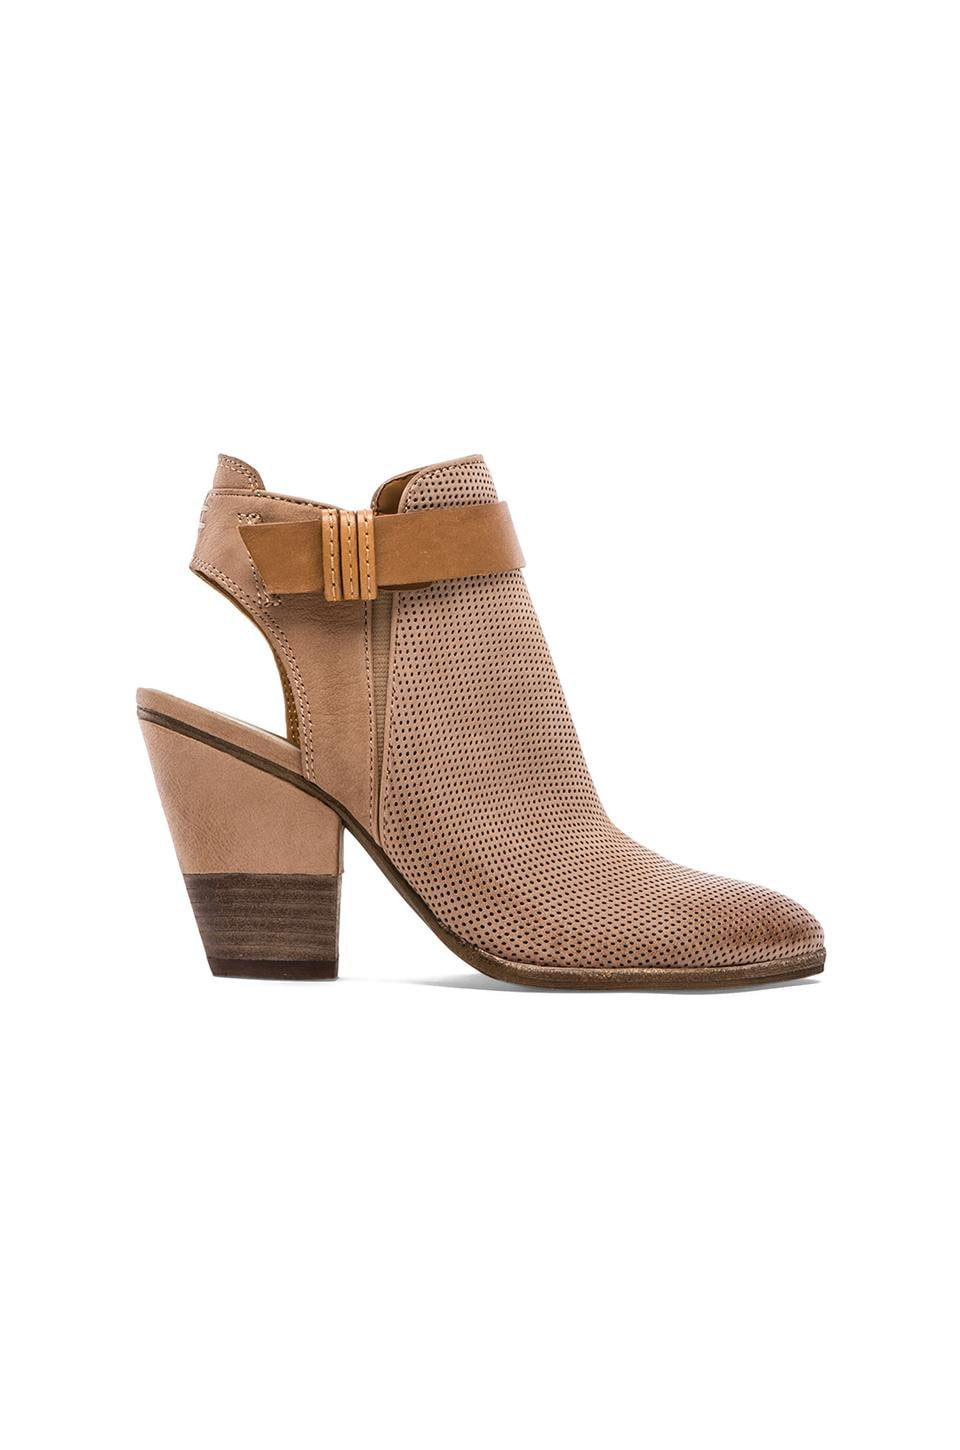 Dolce Vita Henna Bootie in Taupe